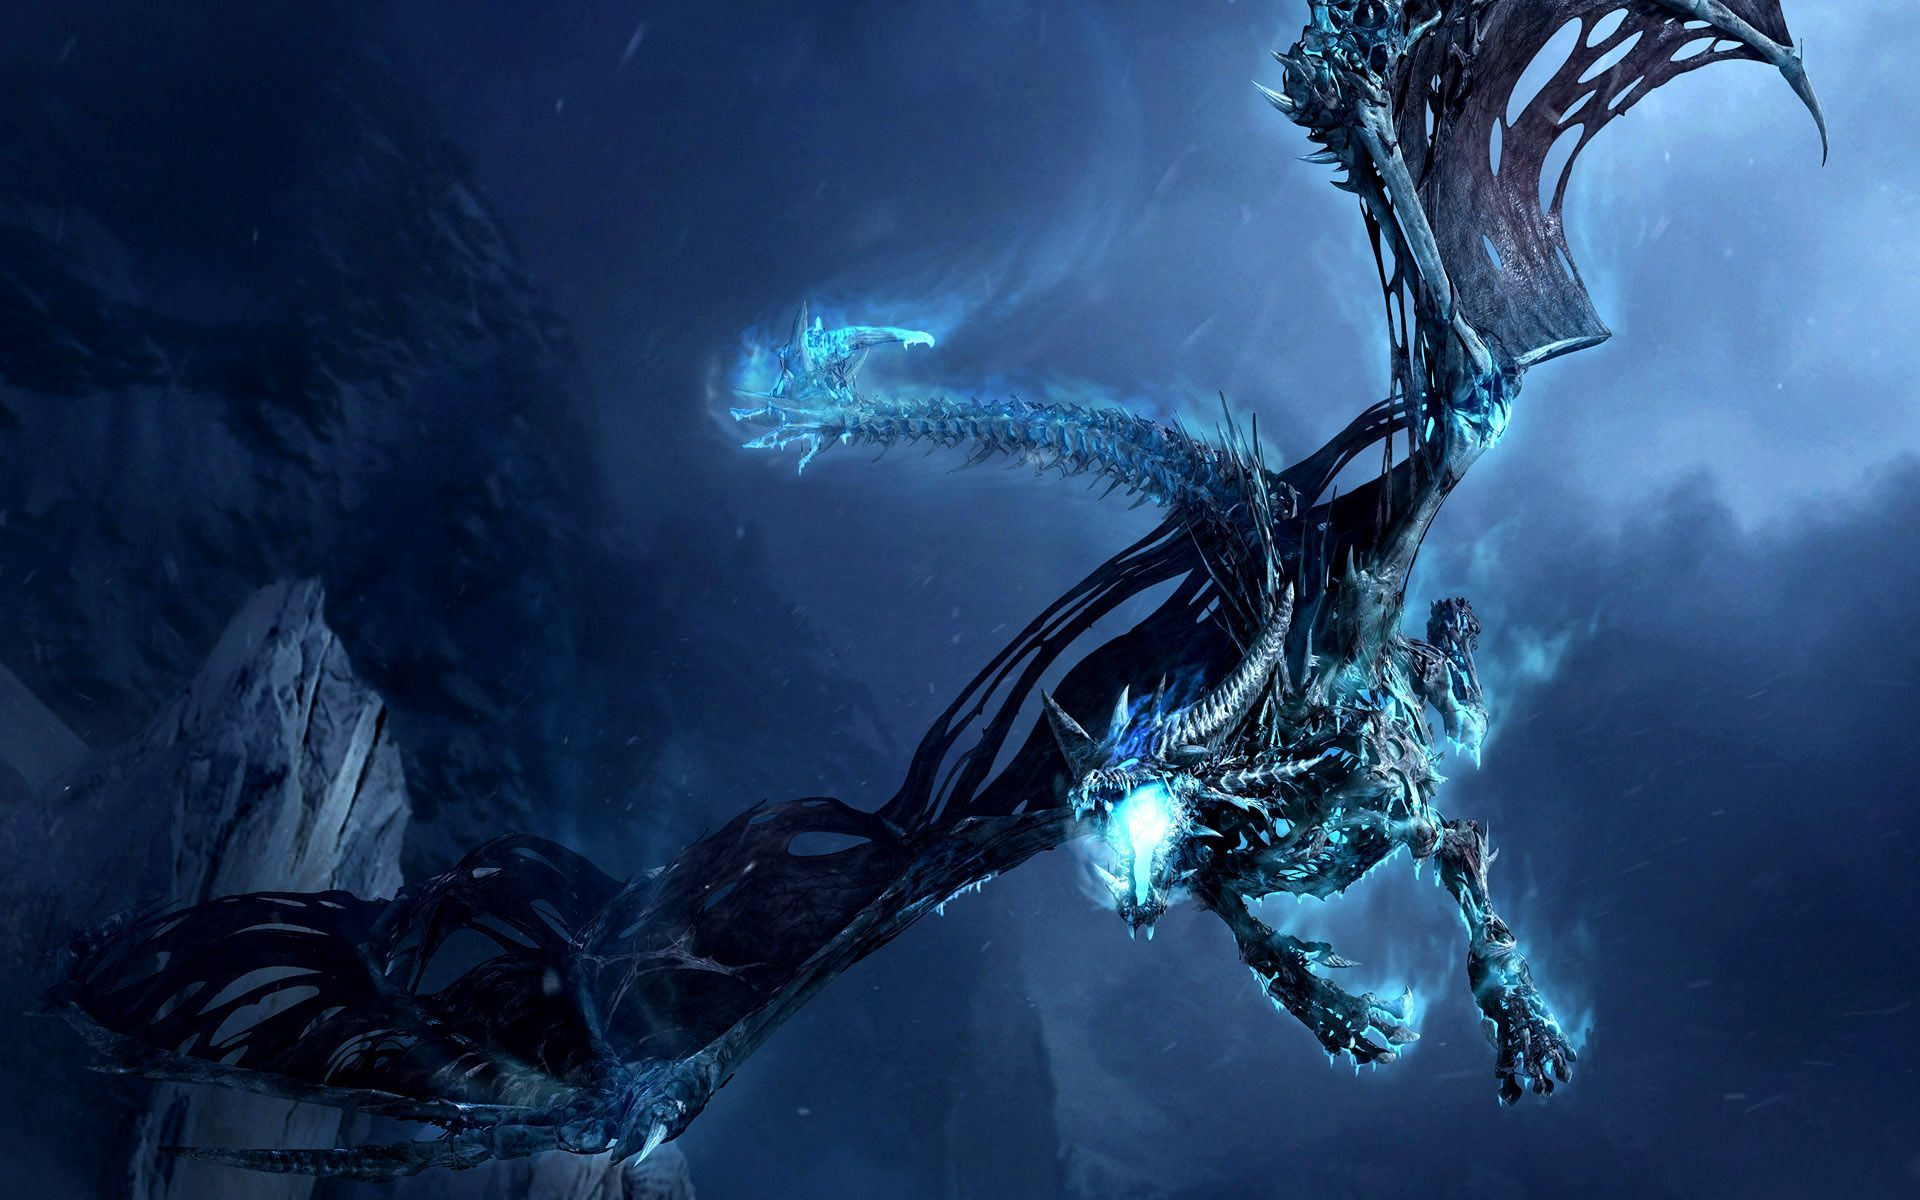 Demon Dragon Wallpapers Top Free Demon Dragon Backgrounds Wallpaperaccess Ice Dragon World Of Warcraft Wallpaper Dragon Pictures